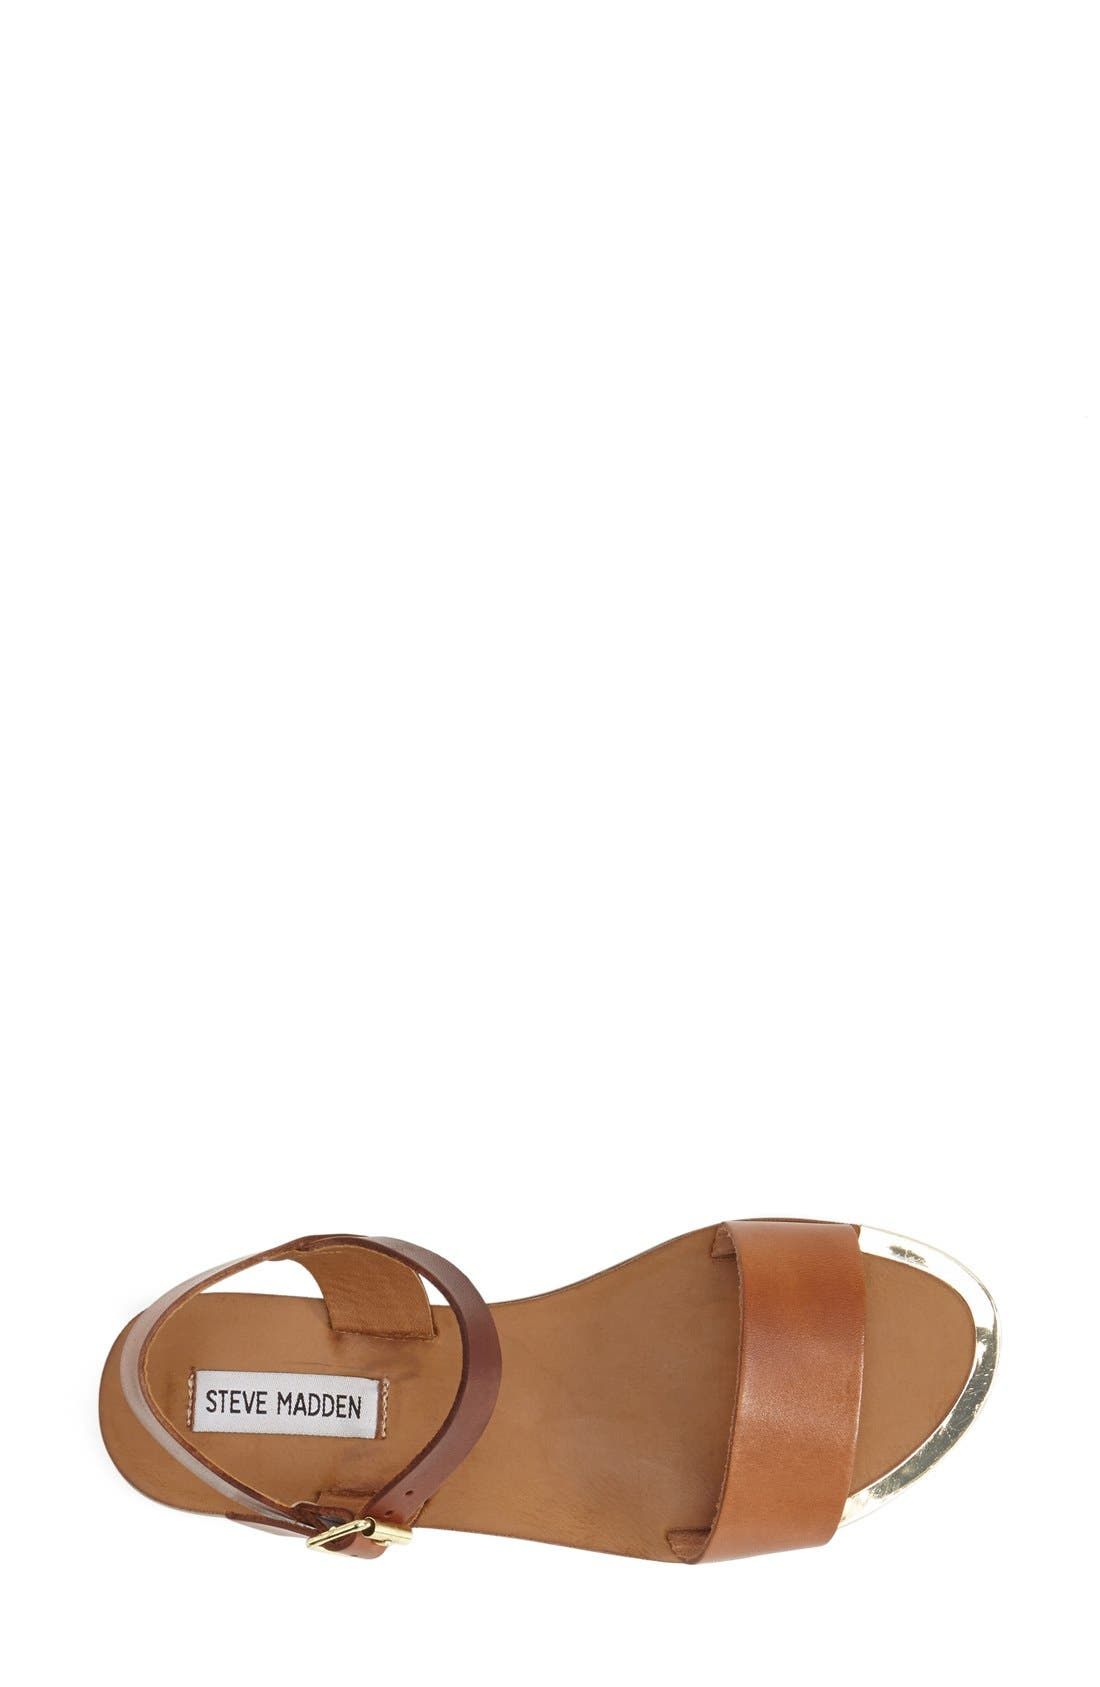 'Rillie' Two Strap Sandal,                             Alternate thumbnail 3, color,                             Tan Leather